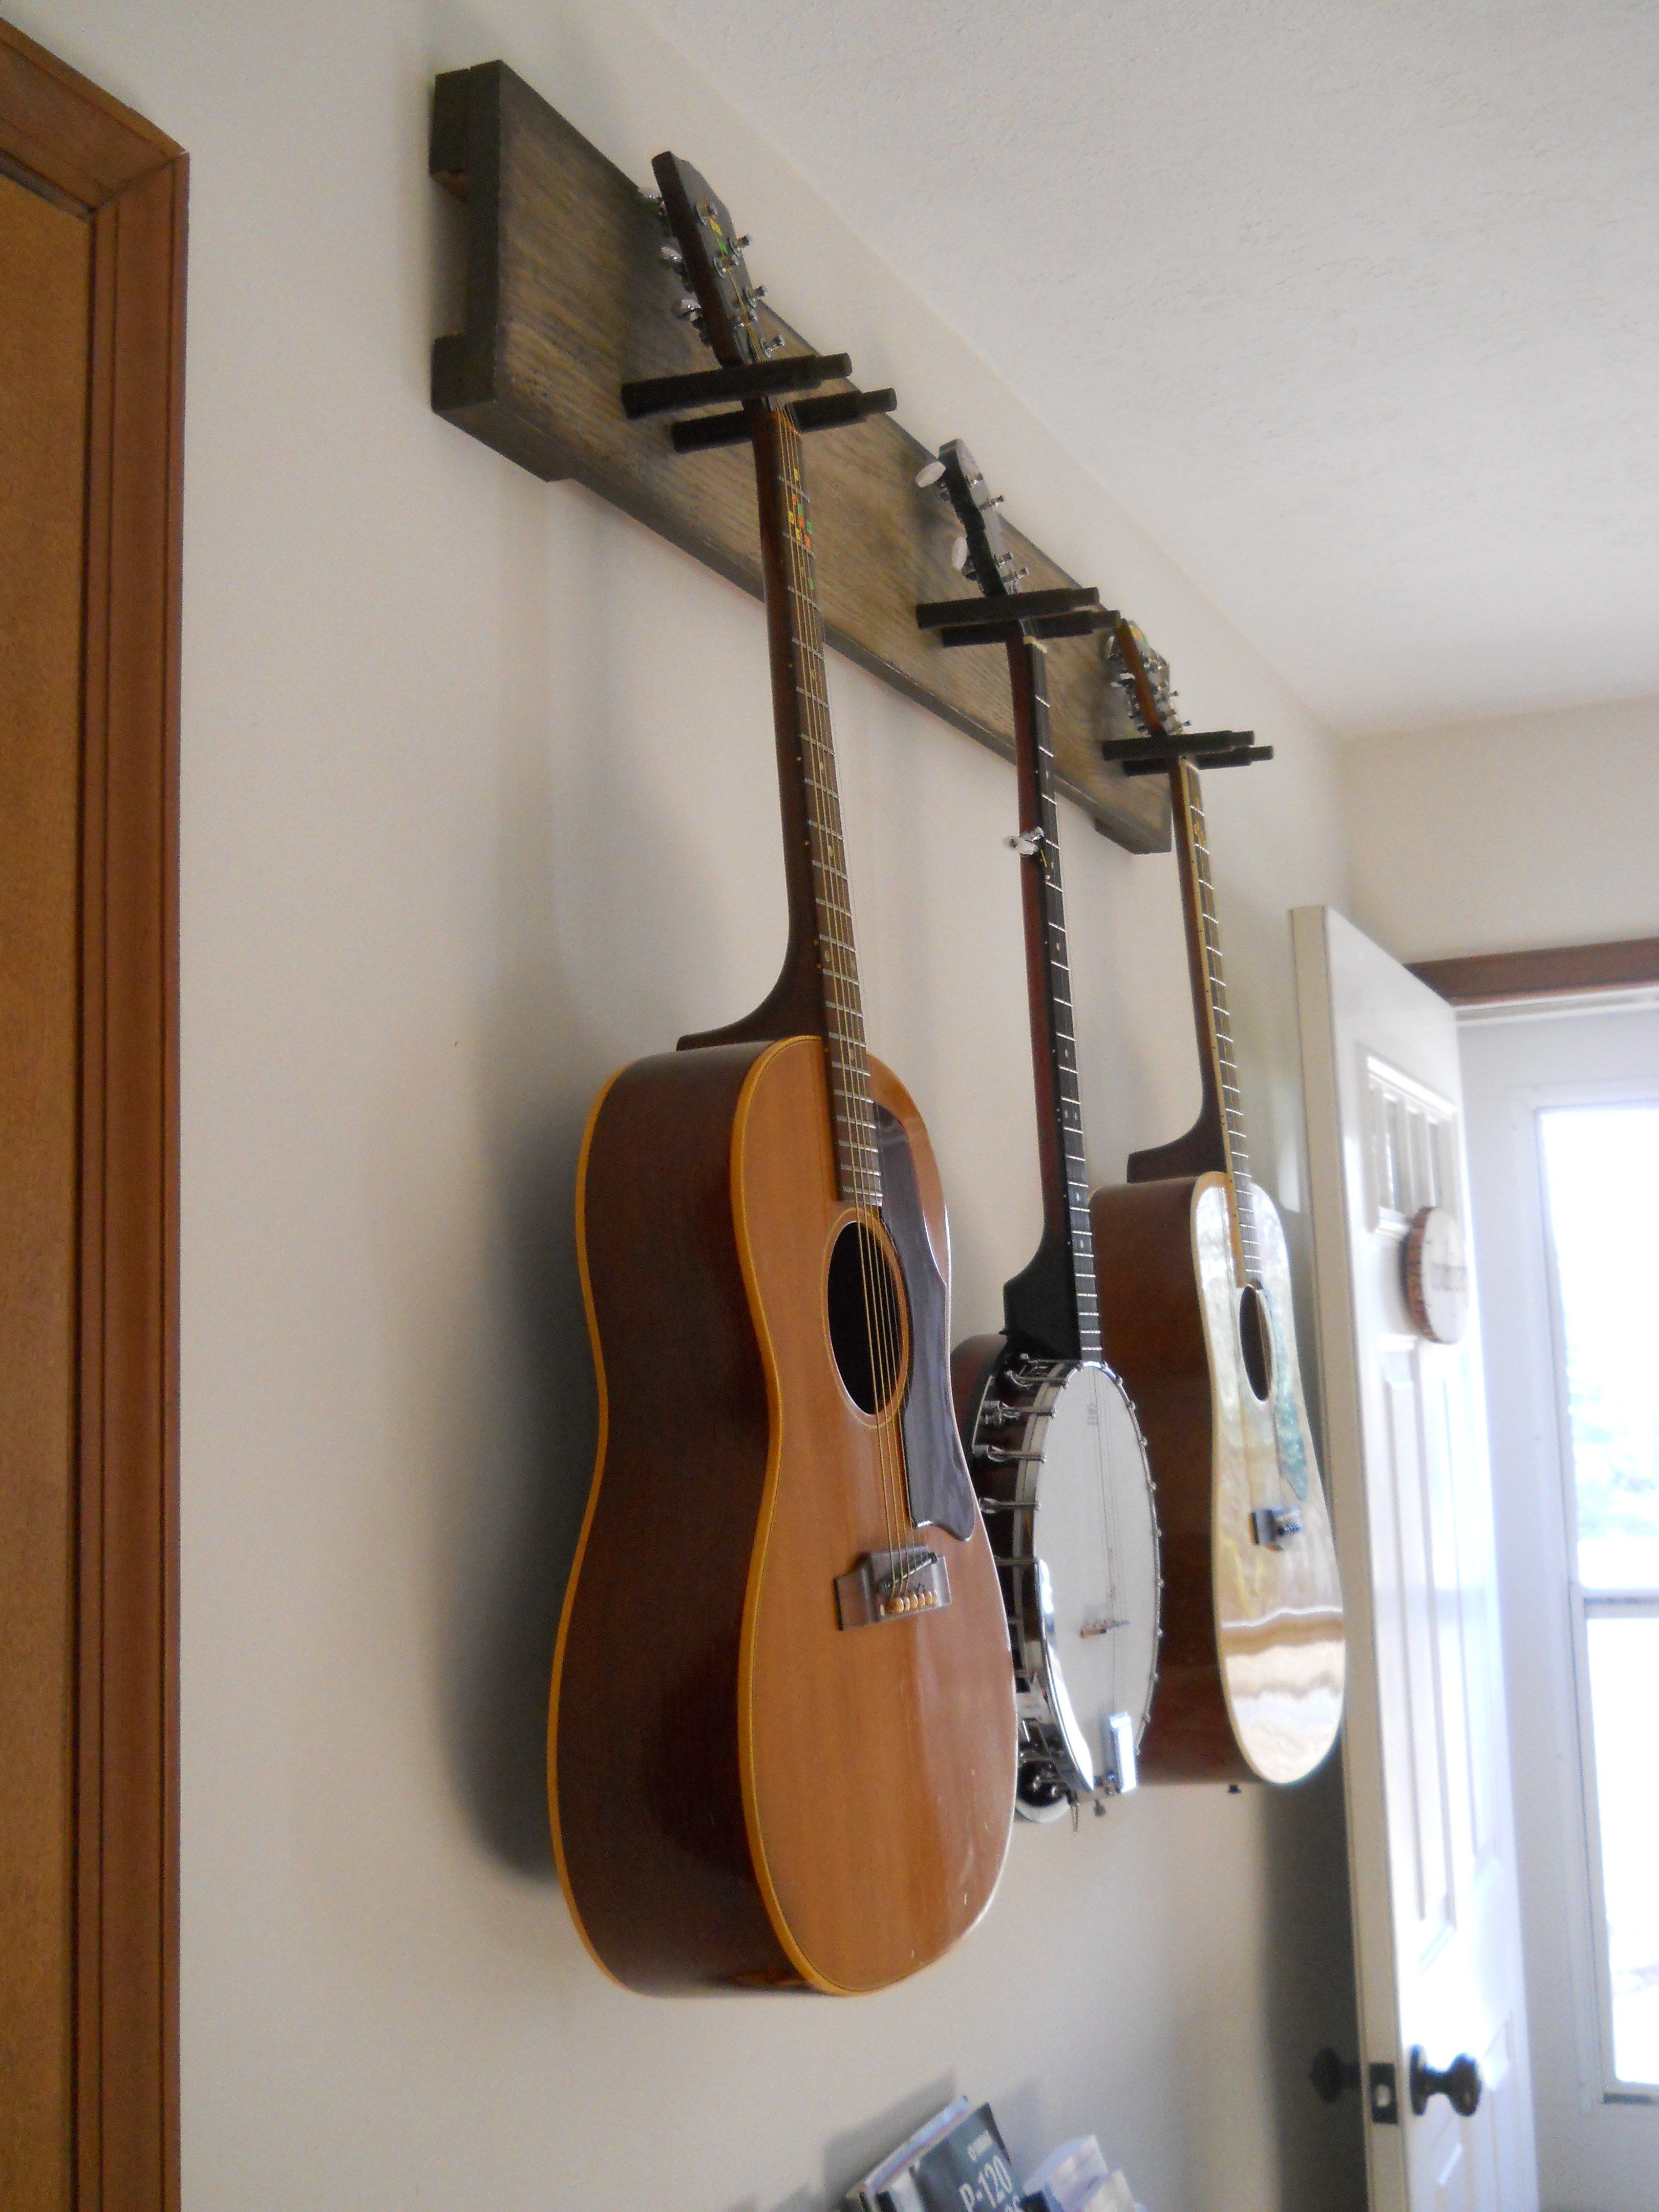 diy guitar hanger simple secure we practice so much. Black Bedroom Furniture Sets. Home Design Ideas